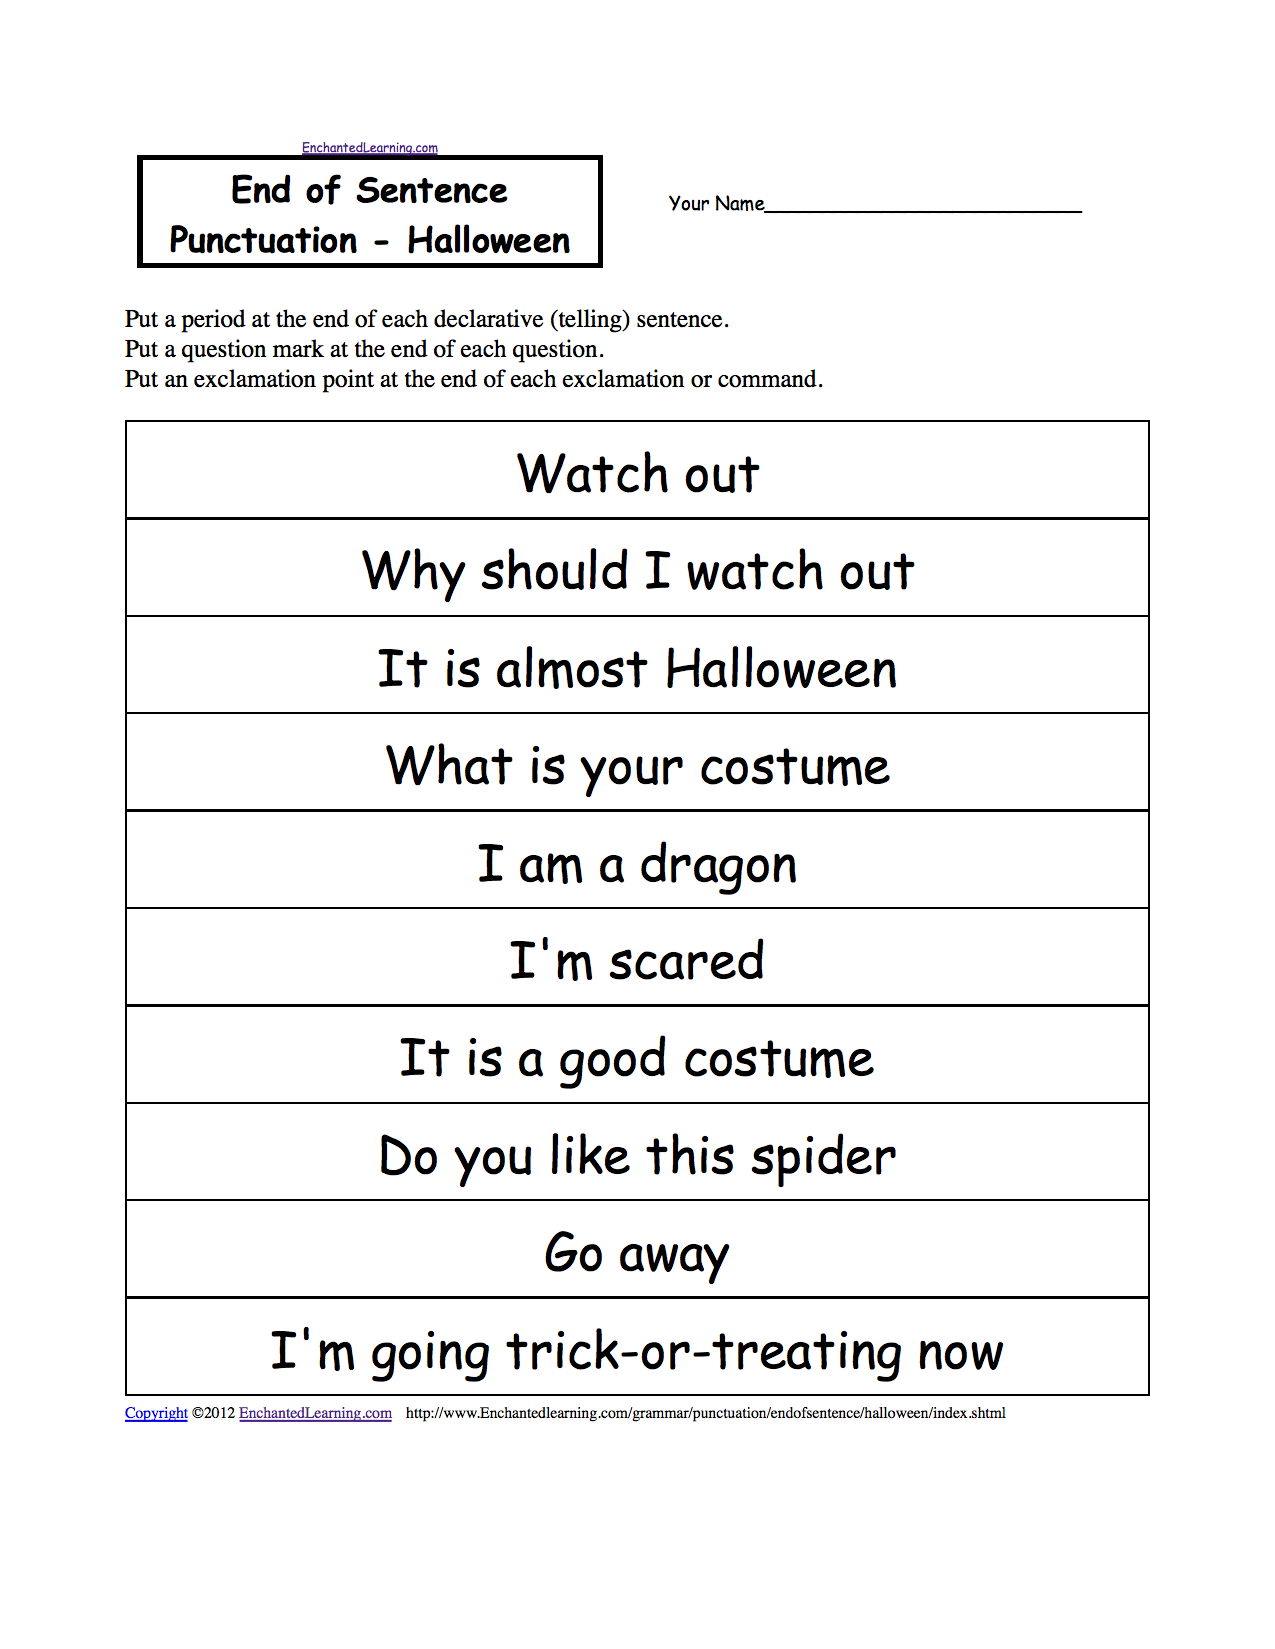 Printables Punctuation Worksheets end of sentence punctuation printable worksheets halloween